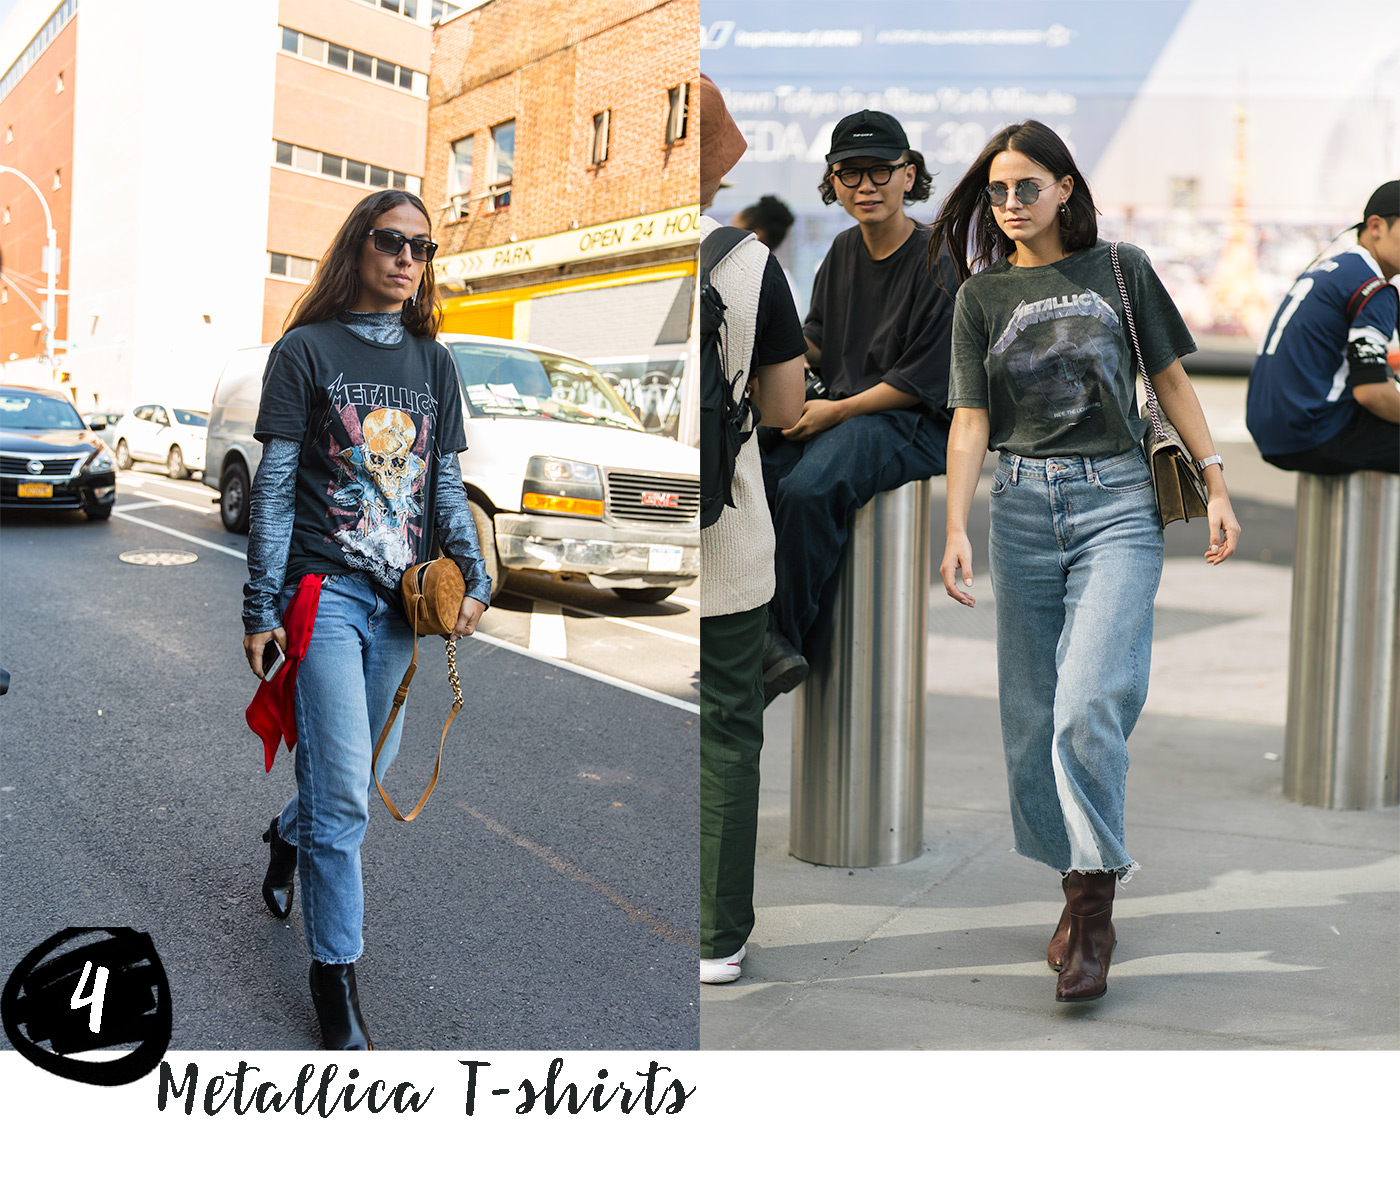 Fashion trends 2016 Metallica Tees compiled and photographed by Armenyl.com